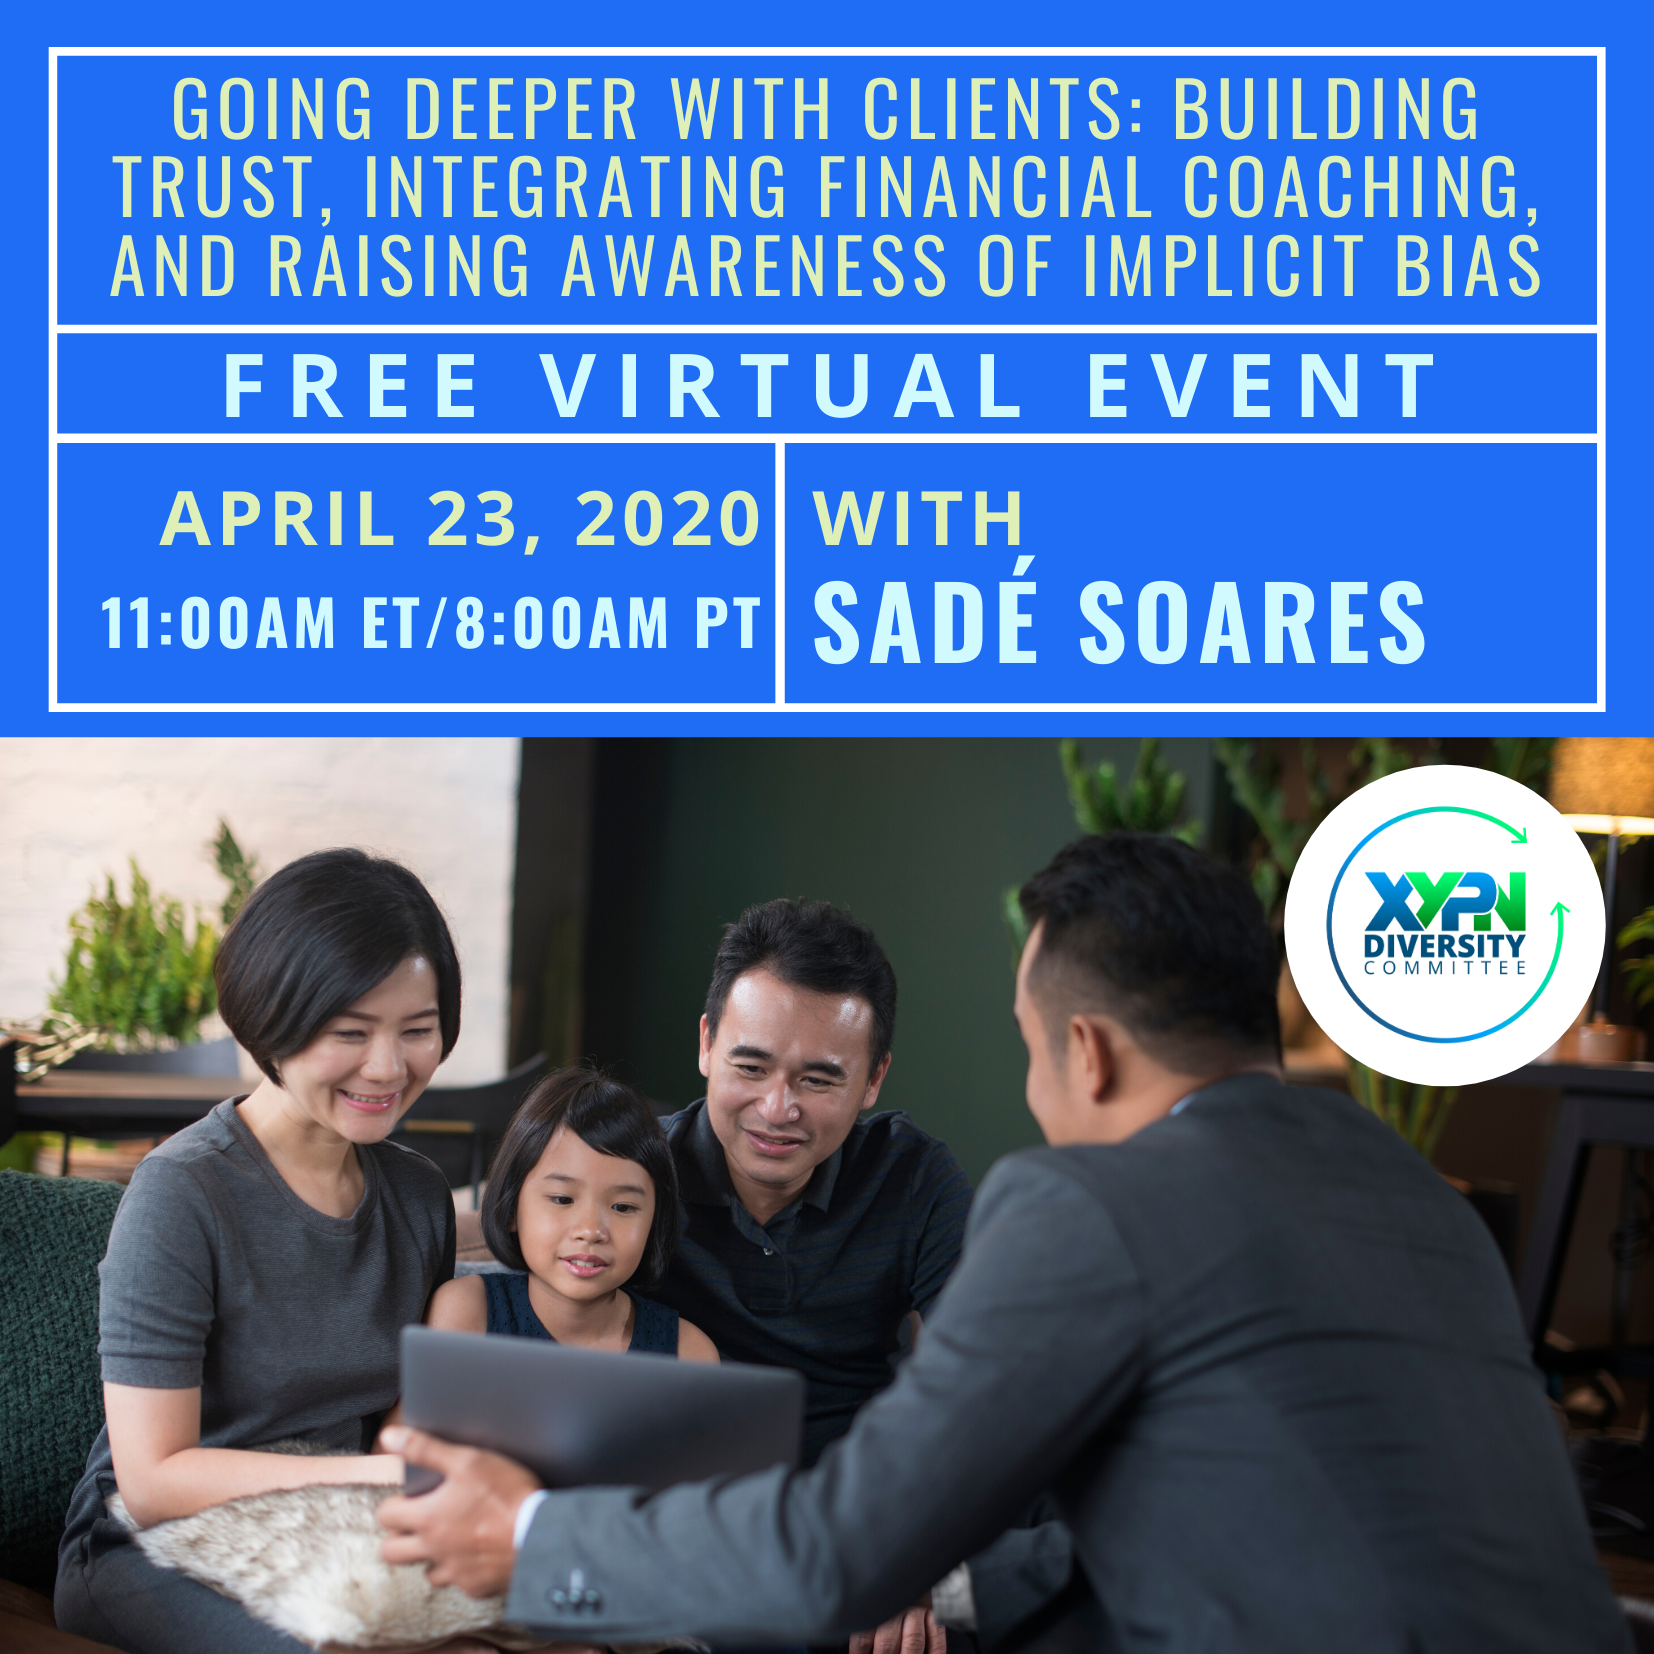 Free Virtual Event - Going Deeper with Clients: Building Trust, Integrating Financial Coaching, and Raising Awareness of Implicit Bias on April 23 at 11:00 am ET/8:00 am PT